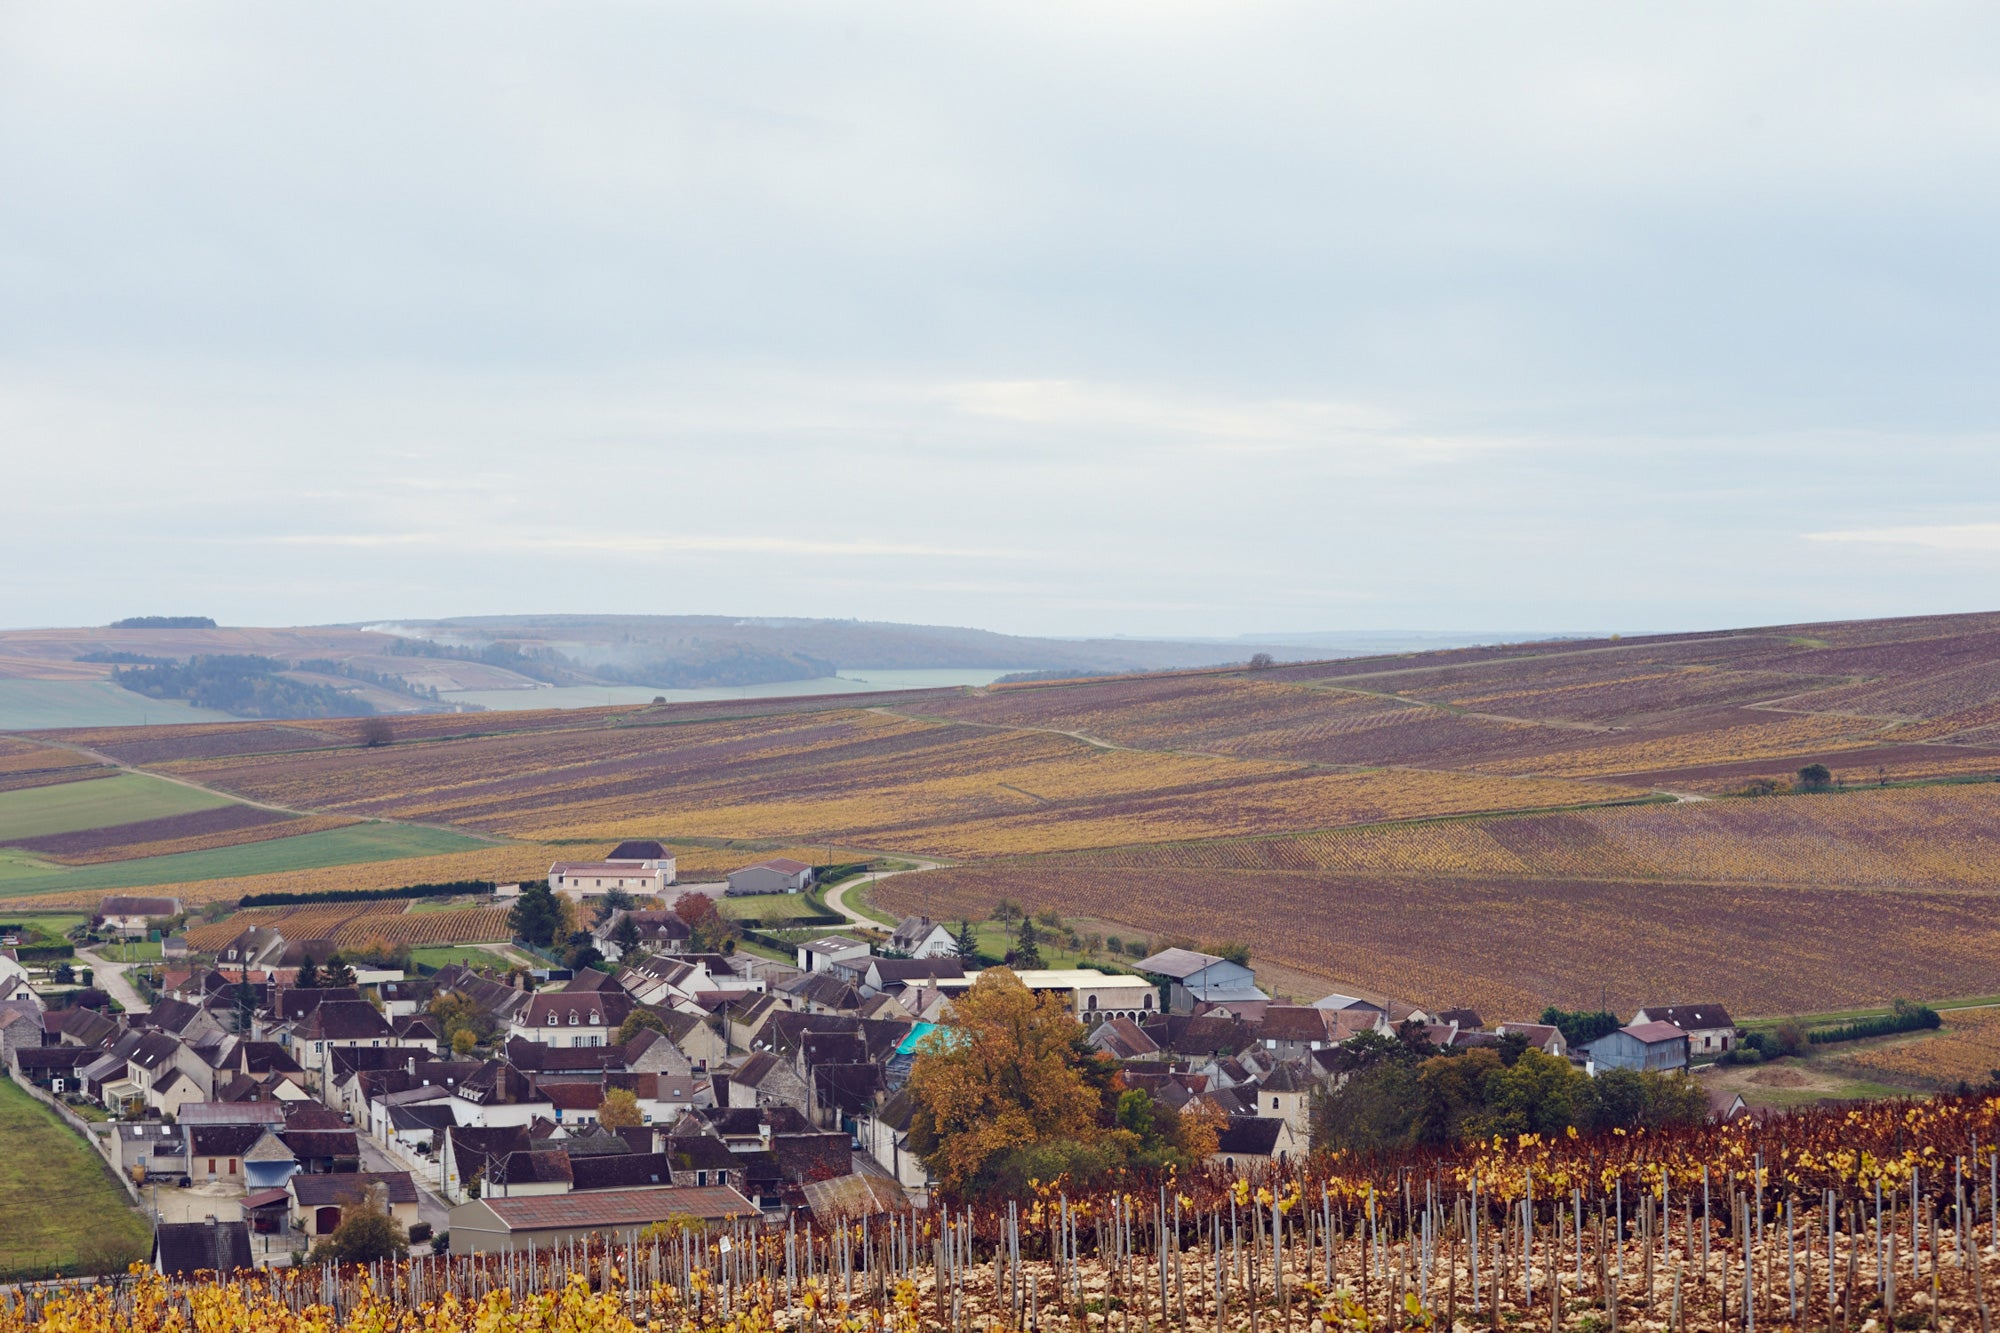 Scenes from Chablis